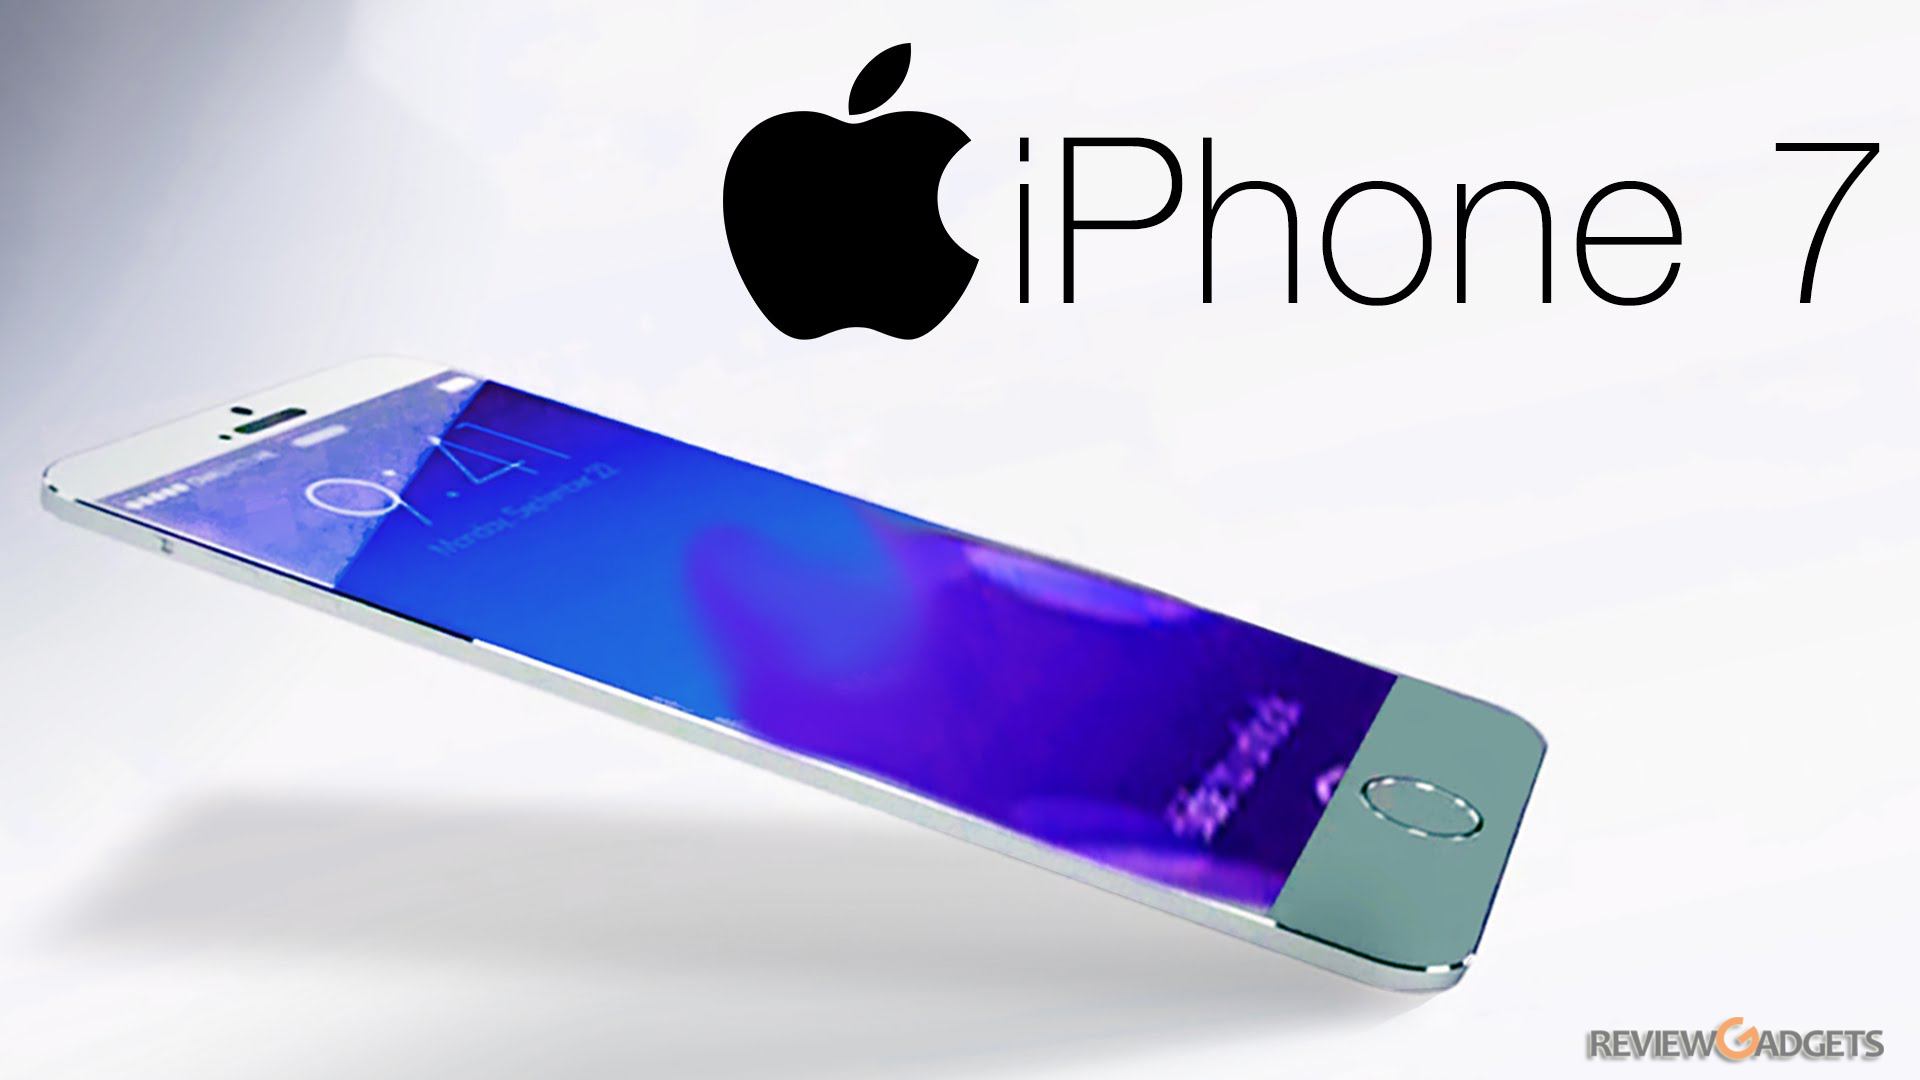 iPhone 7 will feature the same color variants as the iPhone 6s